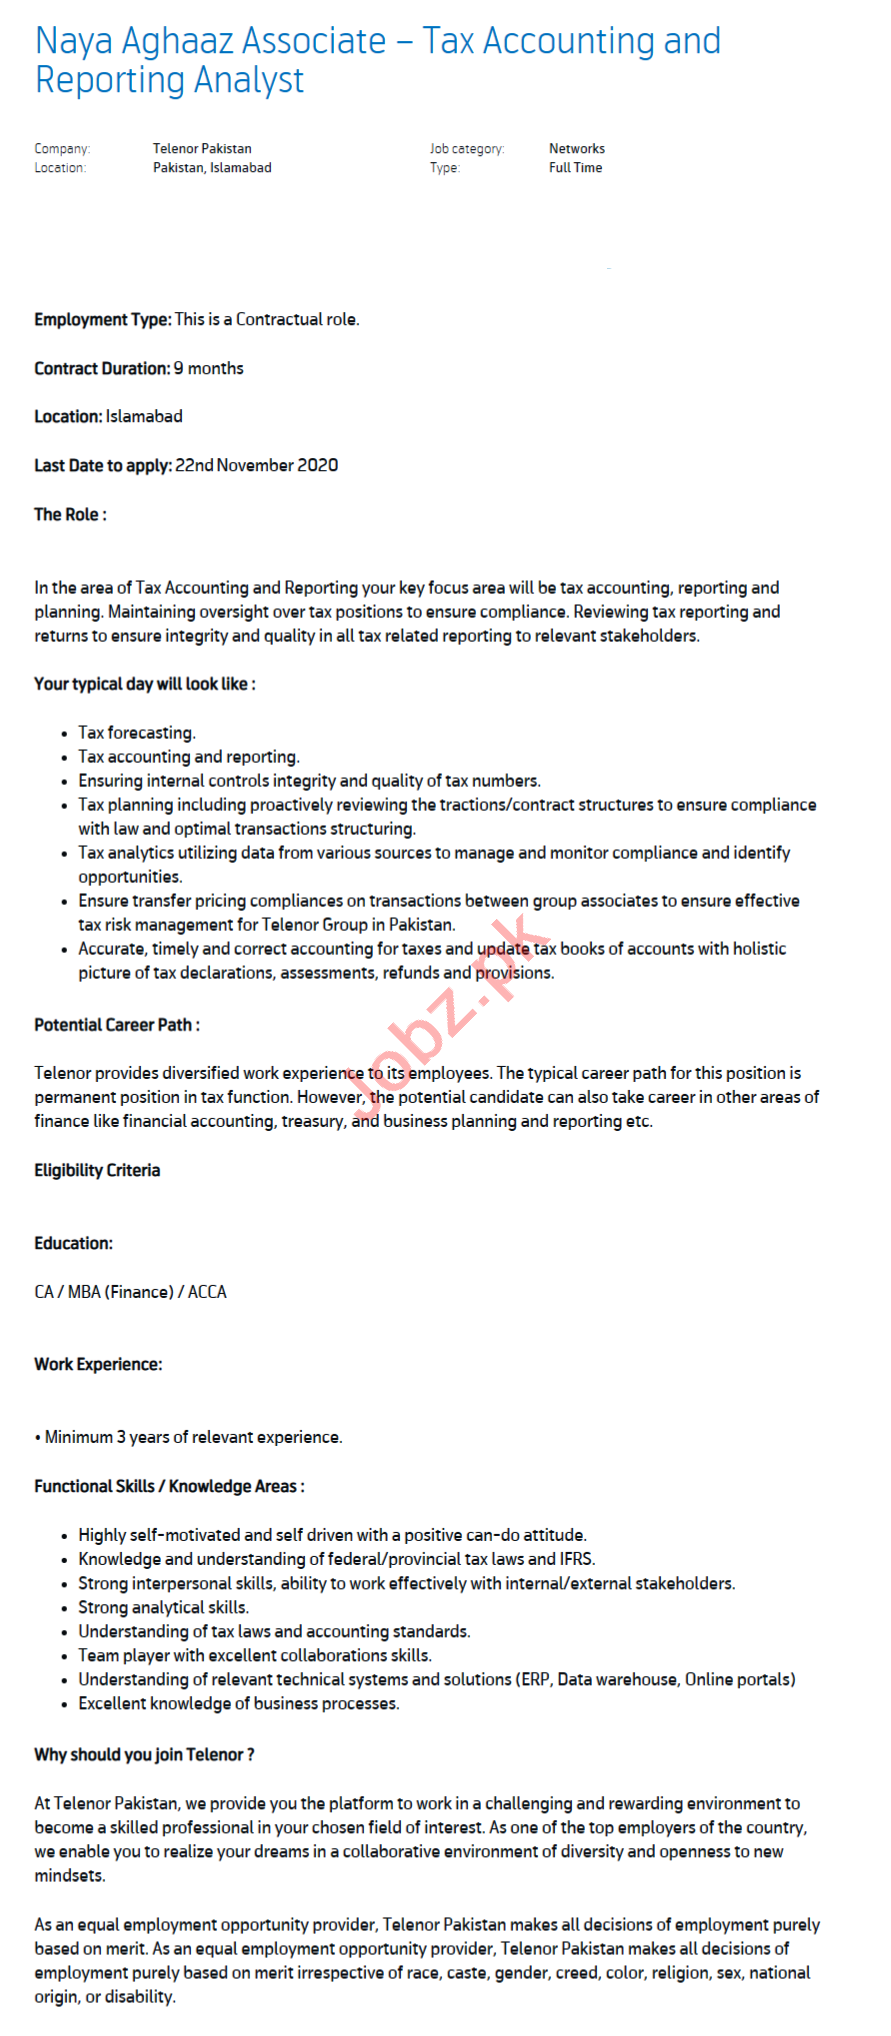 Tax Accounting Analyst & Report Analyst Jobs 2020